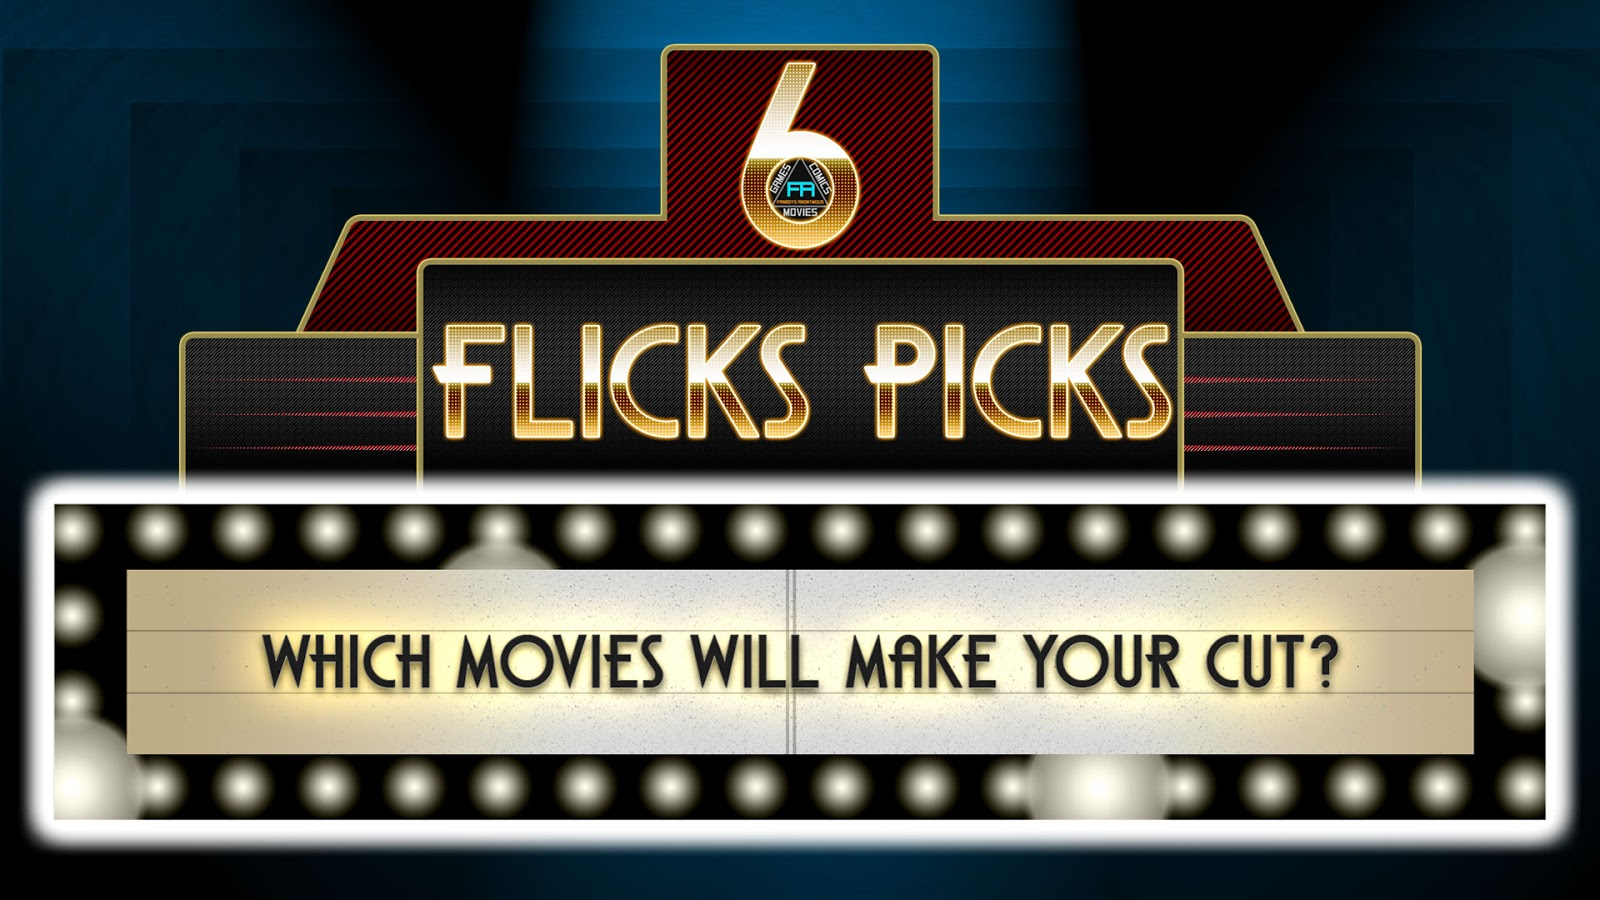 What movies are coming out May 2016 6 Flicks Picks